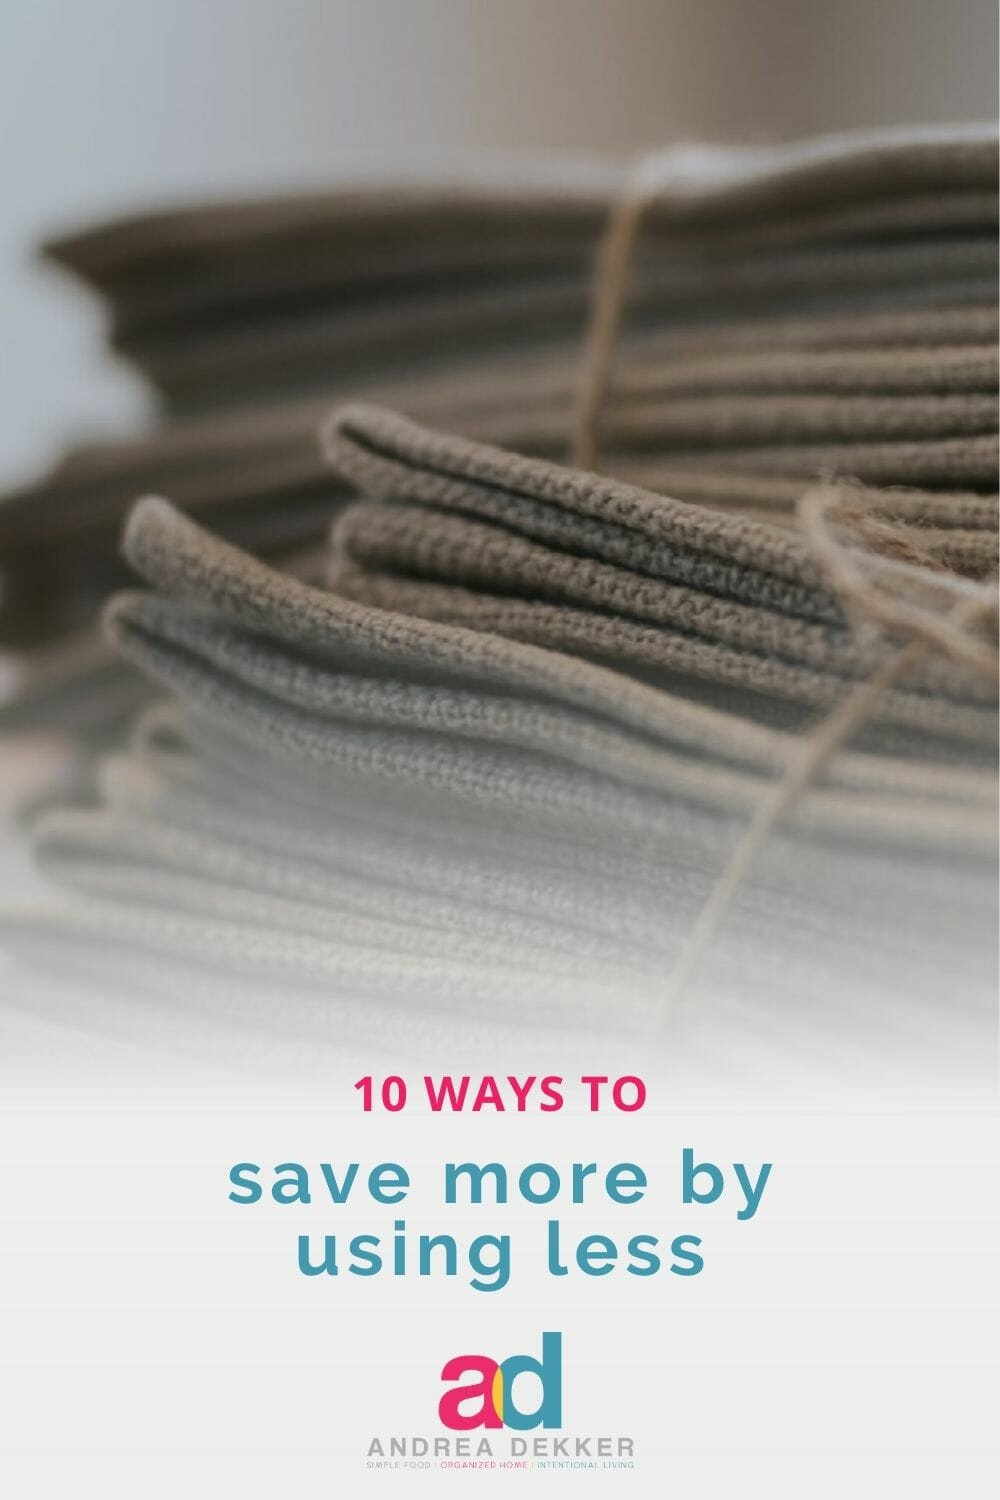 Try these 10 simple, doable ways to save more by using less. The changes are subtle, but done consistently over time, the savings will really add up! via @andreadekker